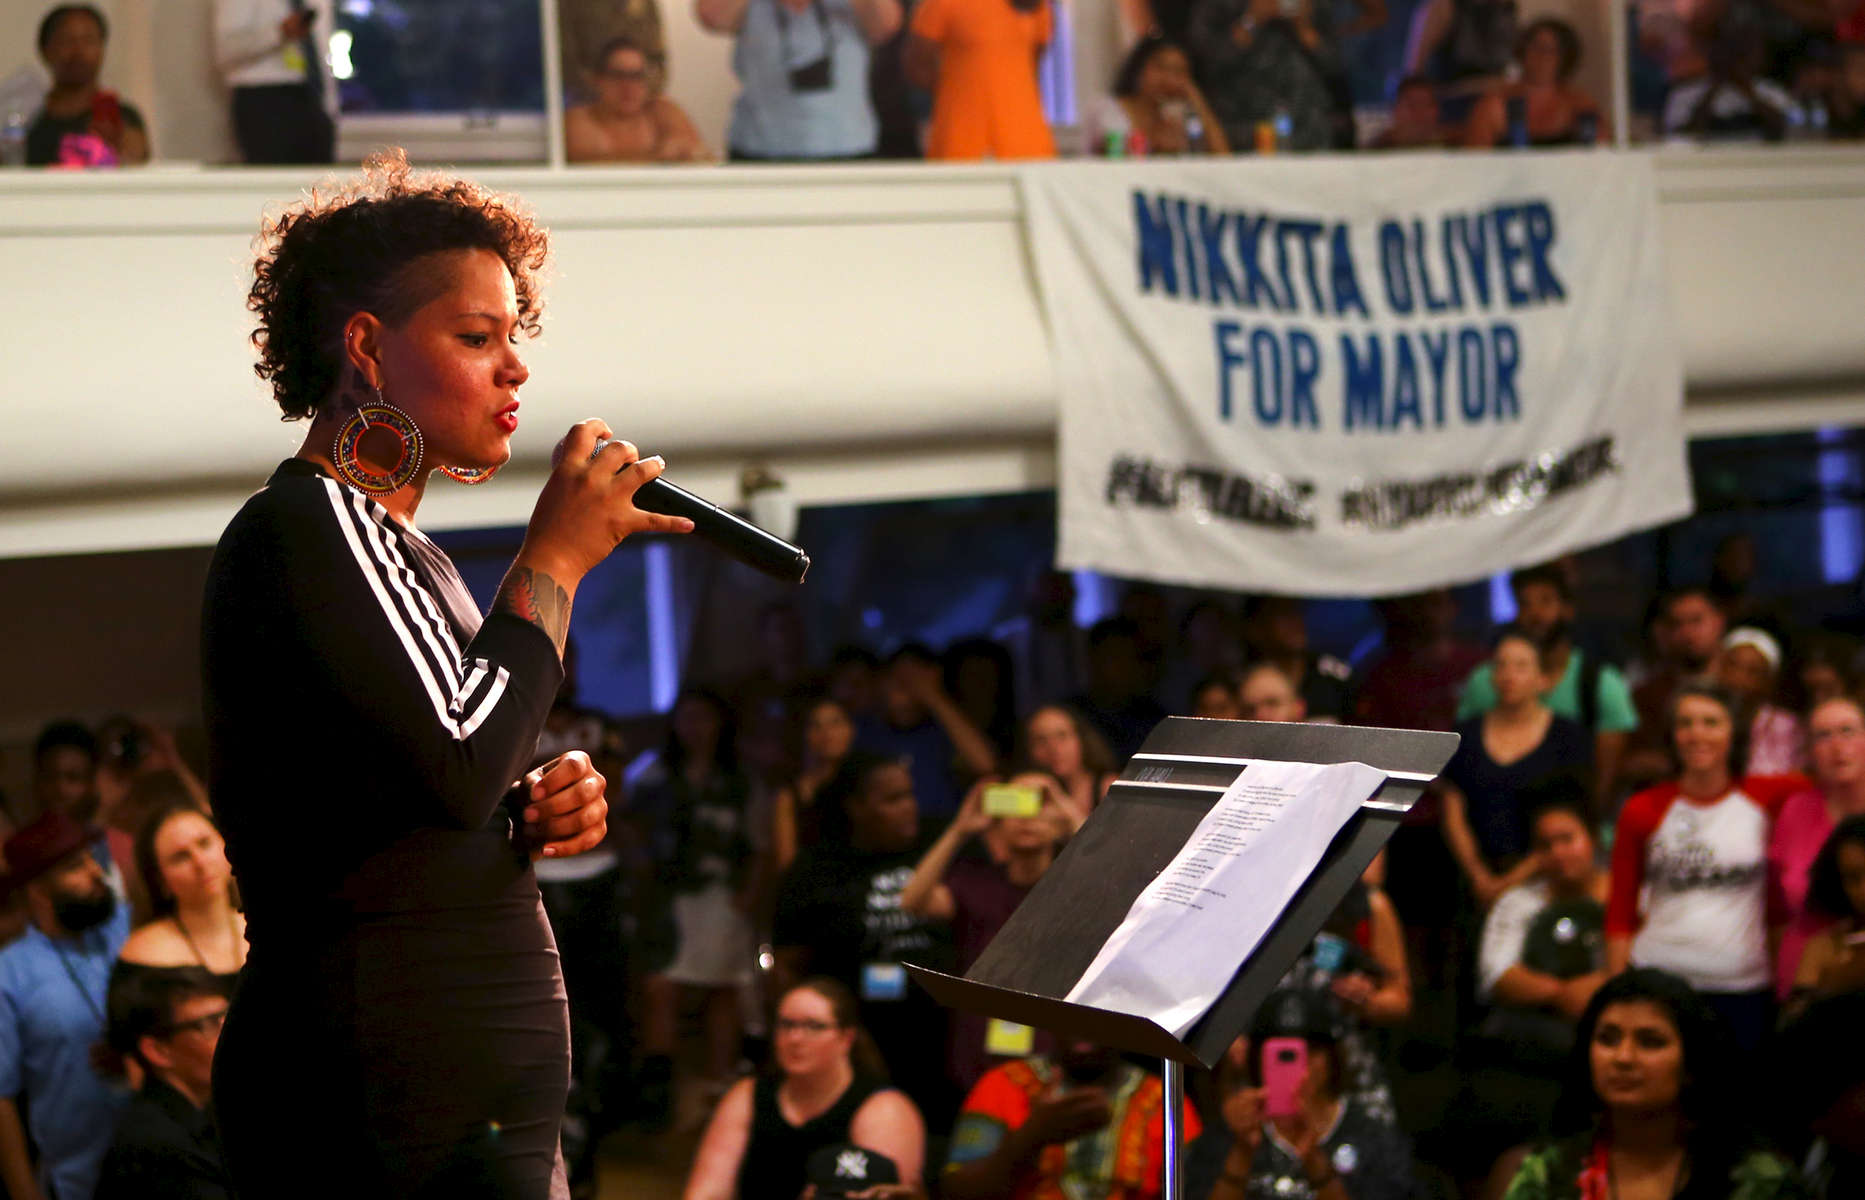 Nikkita Oliver, mayoral candidate of the People's Party of Seattle, speaks to hundreds during a rally for her on primary election night at Washington Hall in Seattle, Wash. on August 1, 2017. (© Karen Ducey)